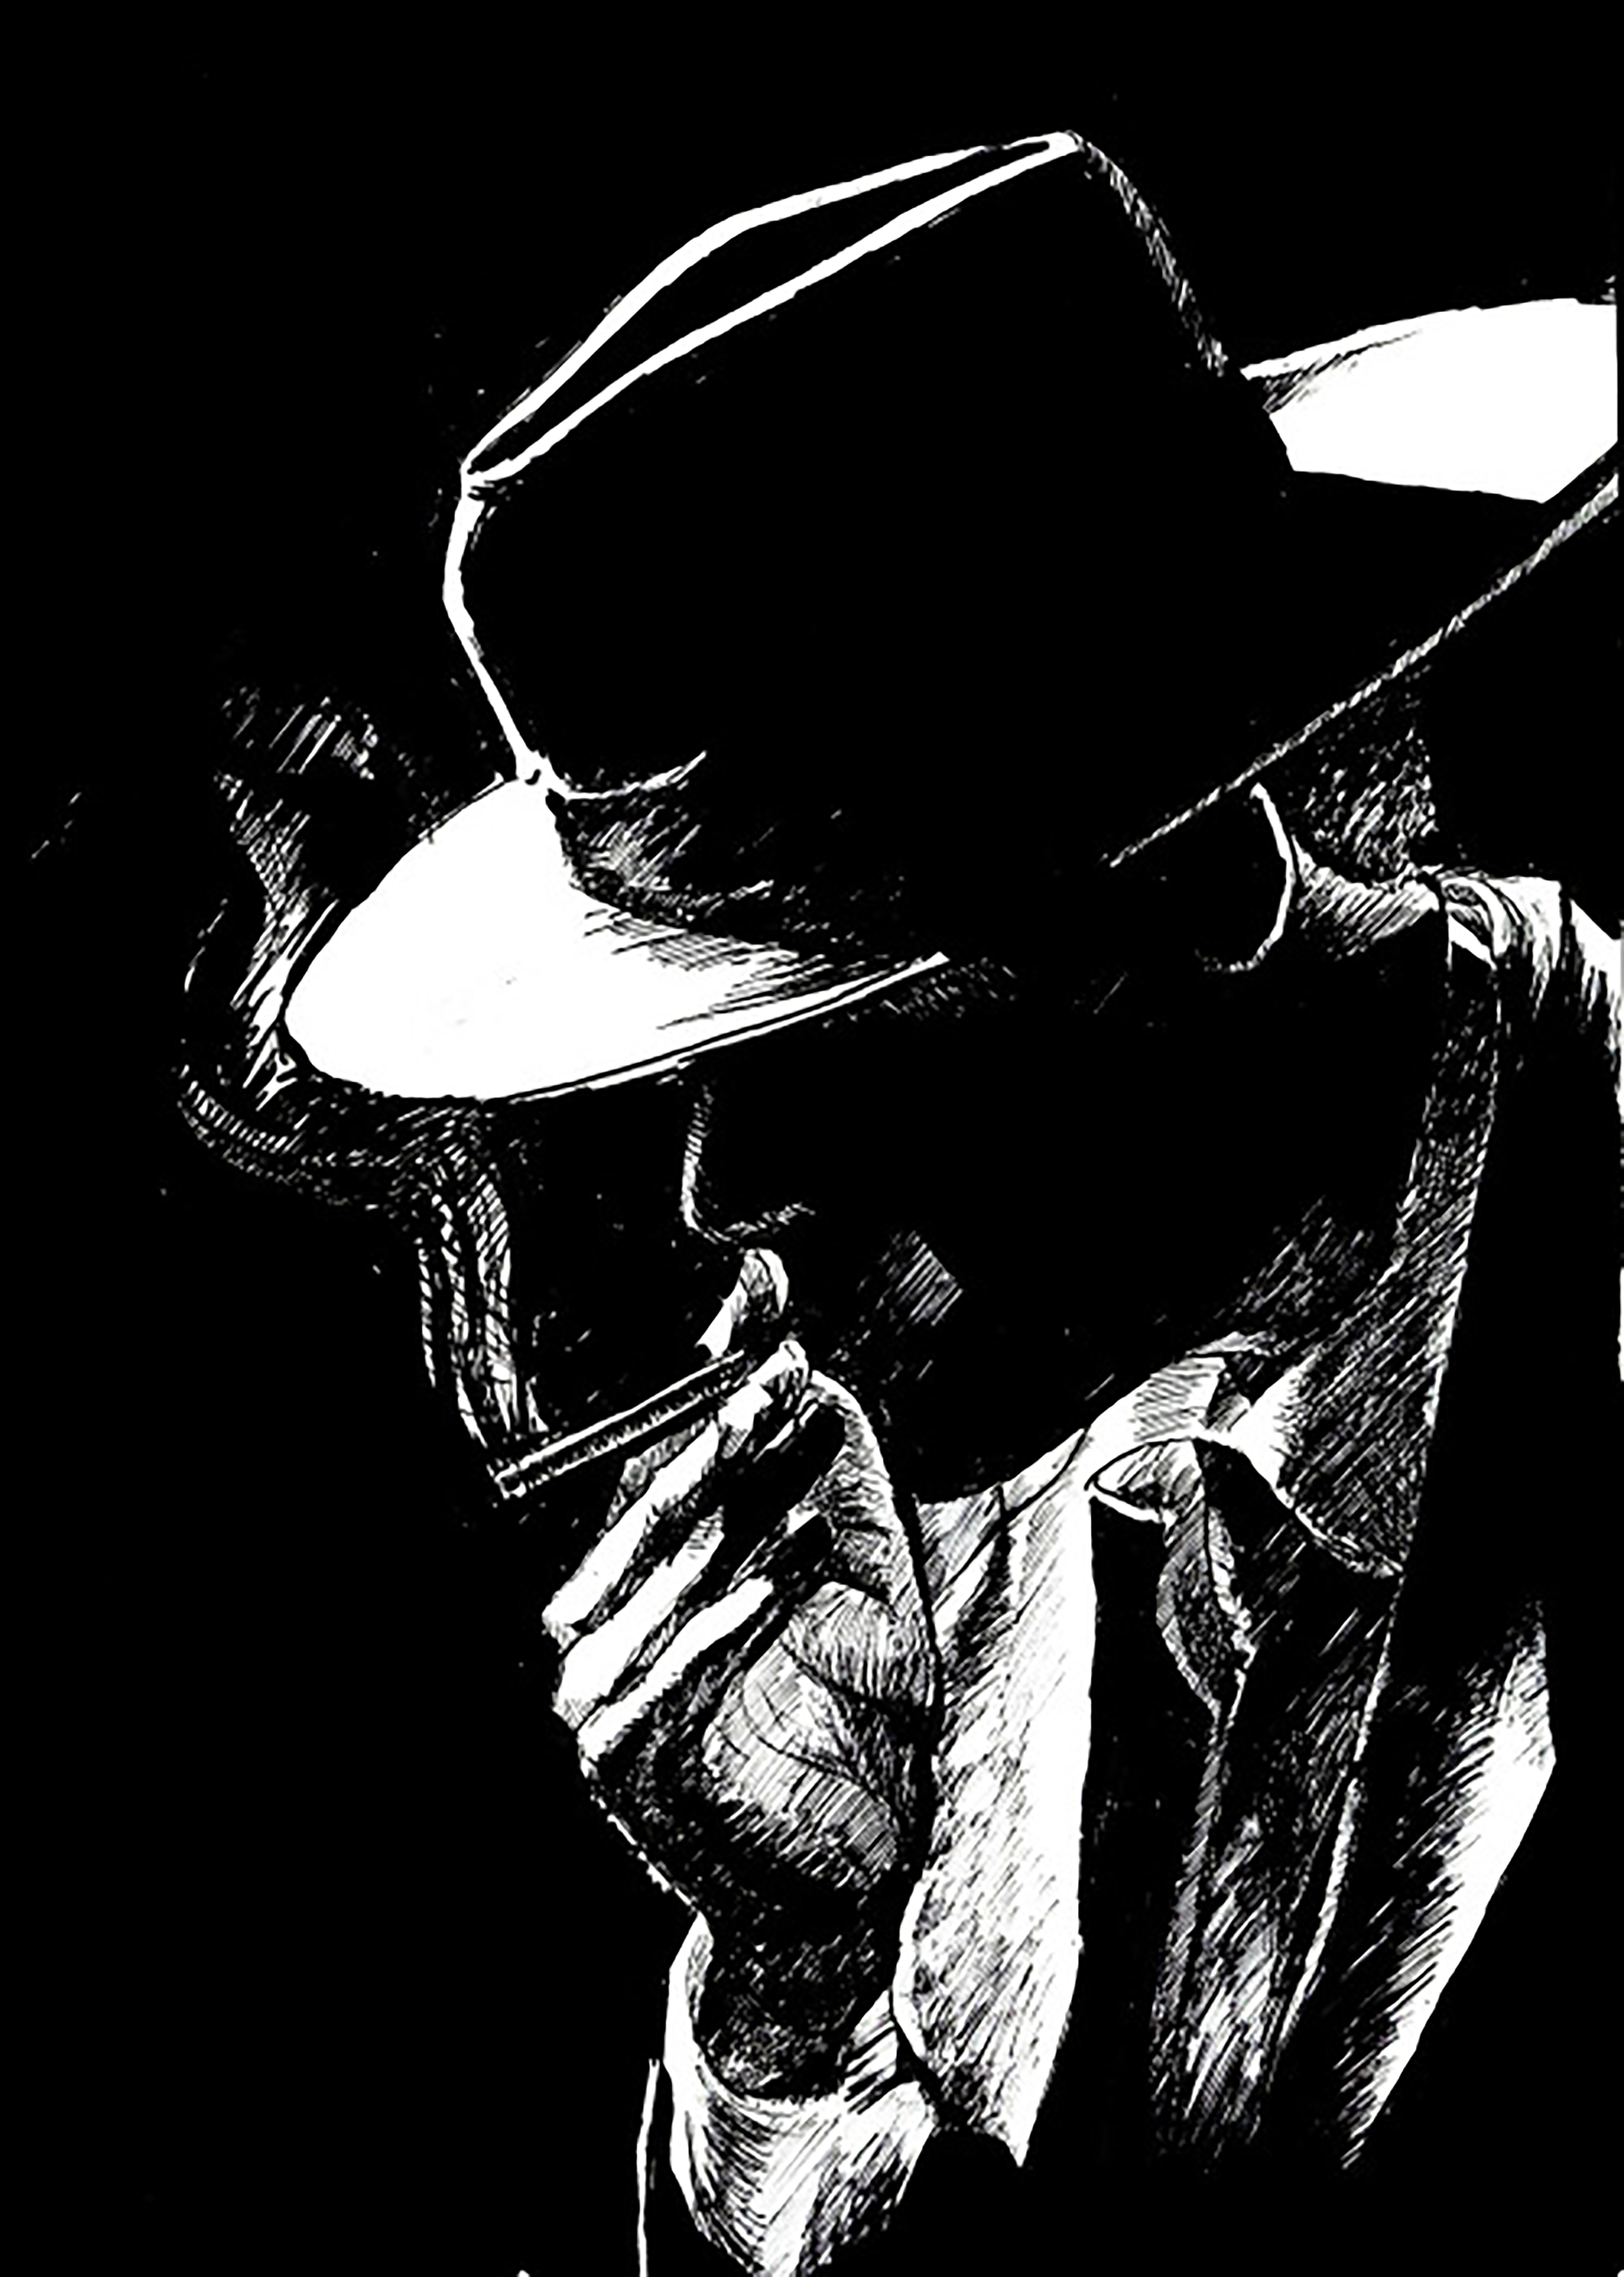 Detective in Shadows